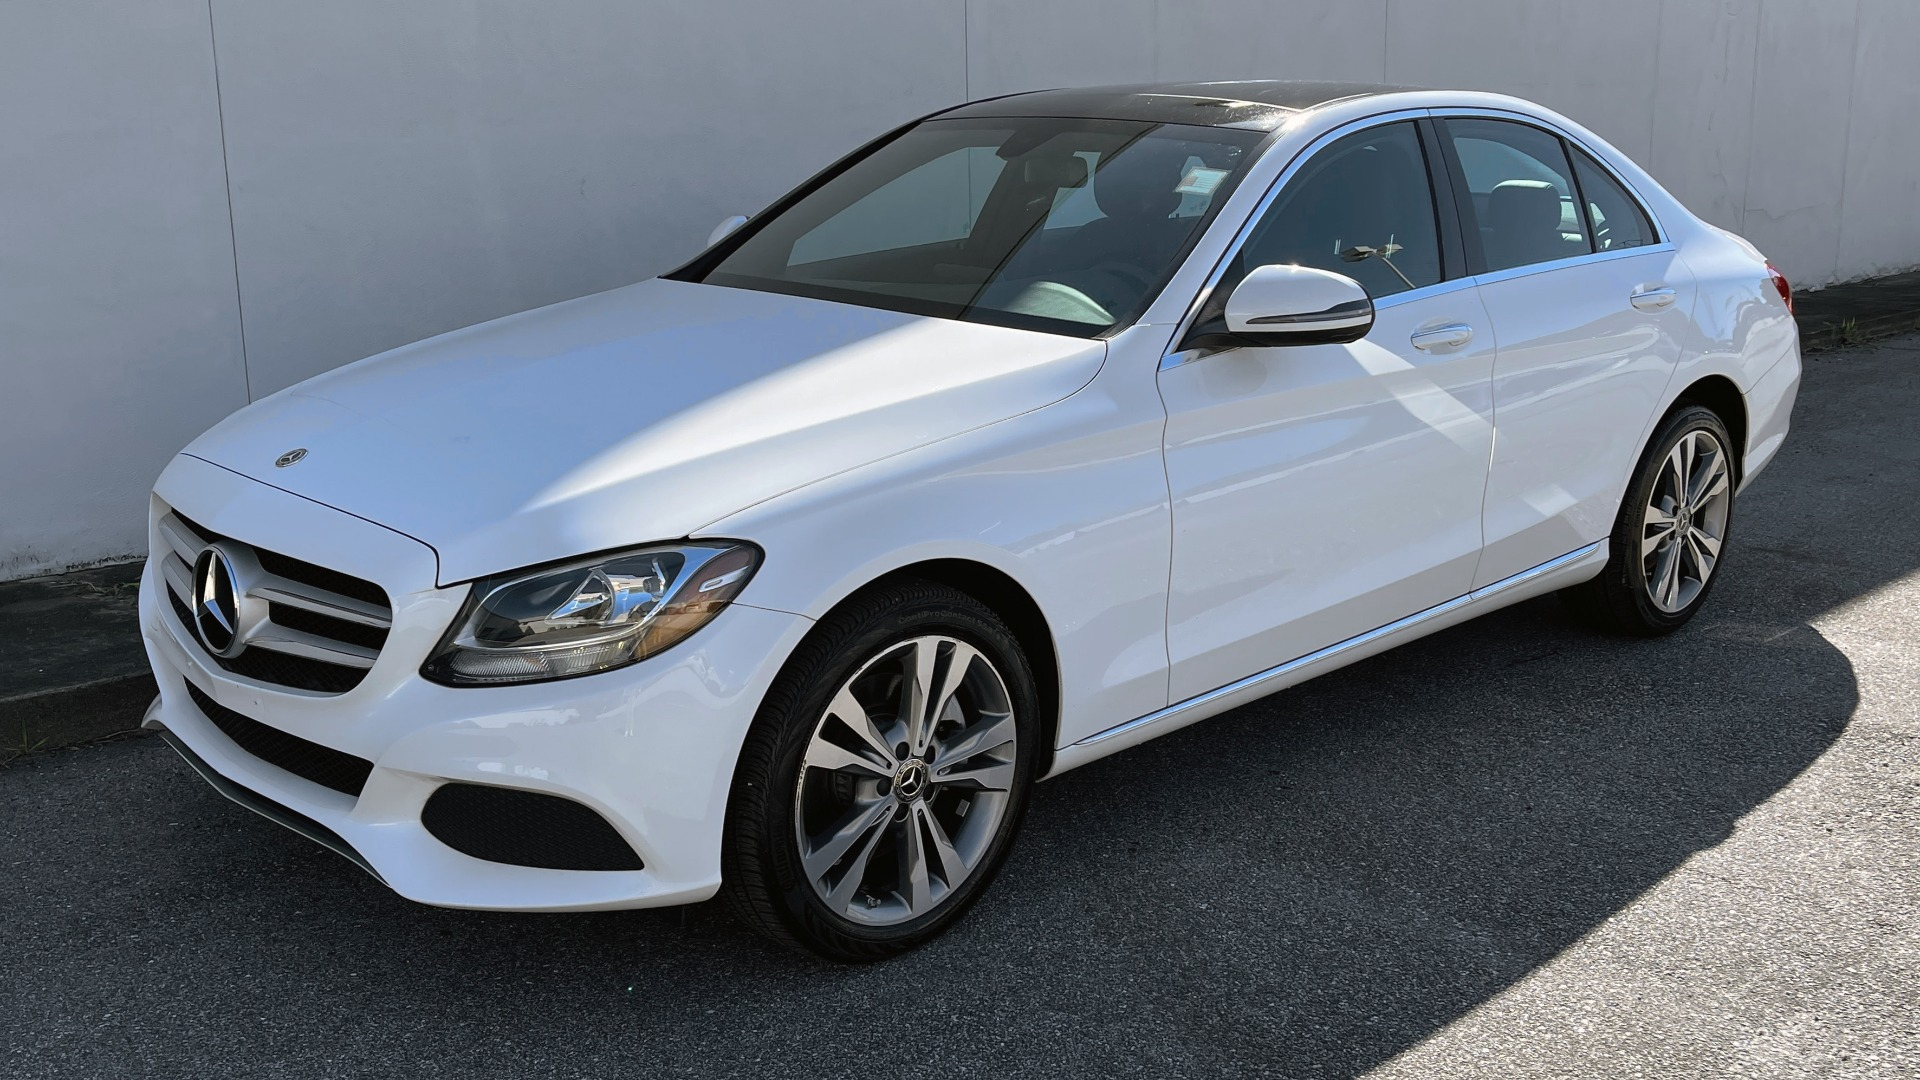 Used 2018 Mercedes-Benz C-CLASS C 300 4MATIC PREMIUM / SMARTPHONE INTEG / PANO-ROOF / REARVIEW for sale $30,995 at Formula Imports in Charlotte NC 28227 2